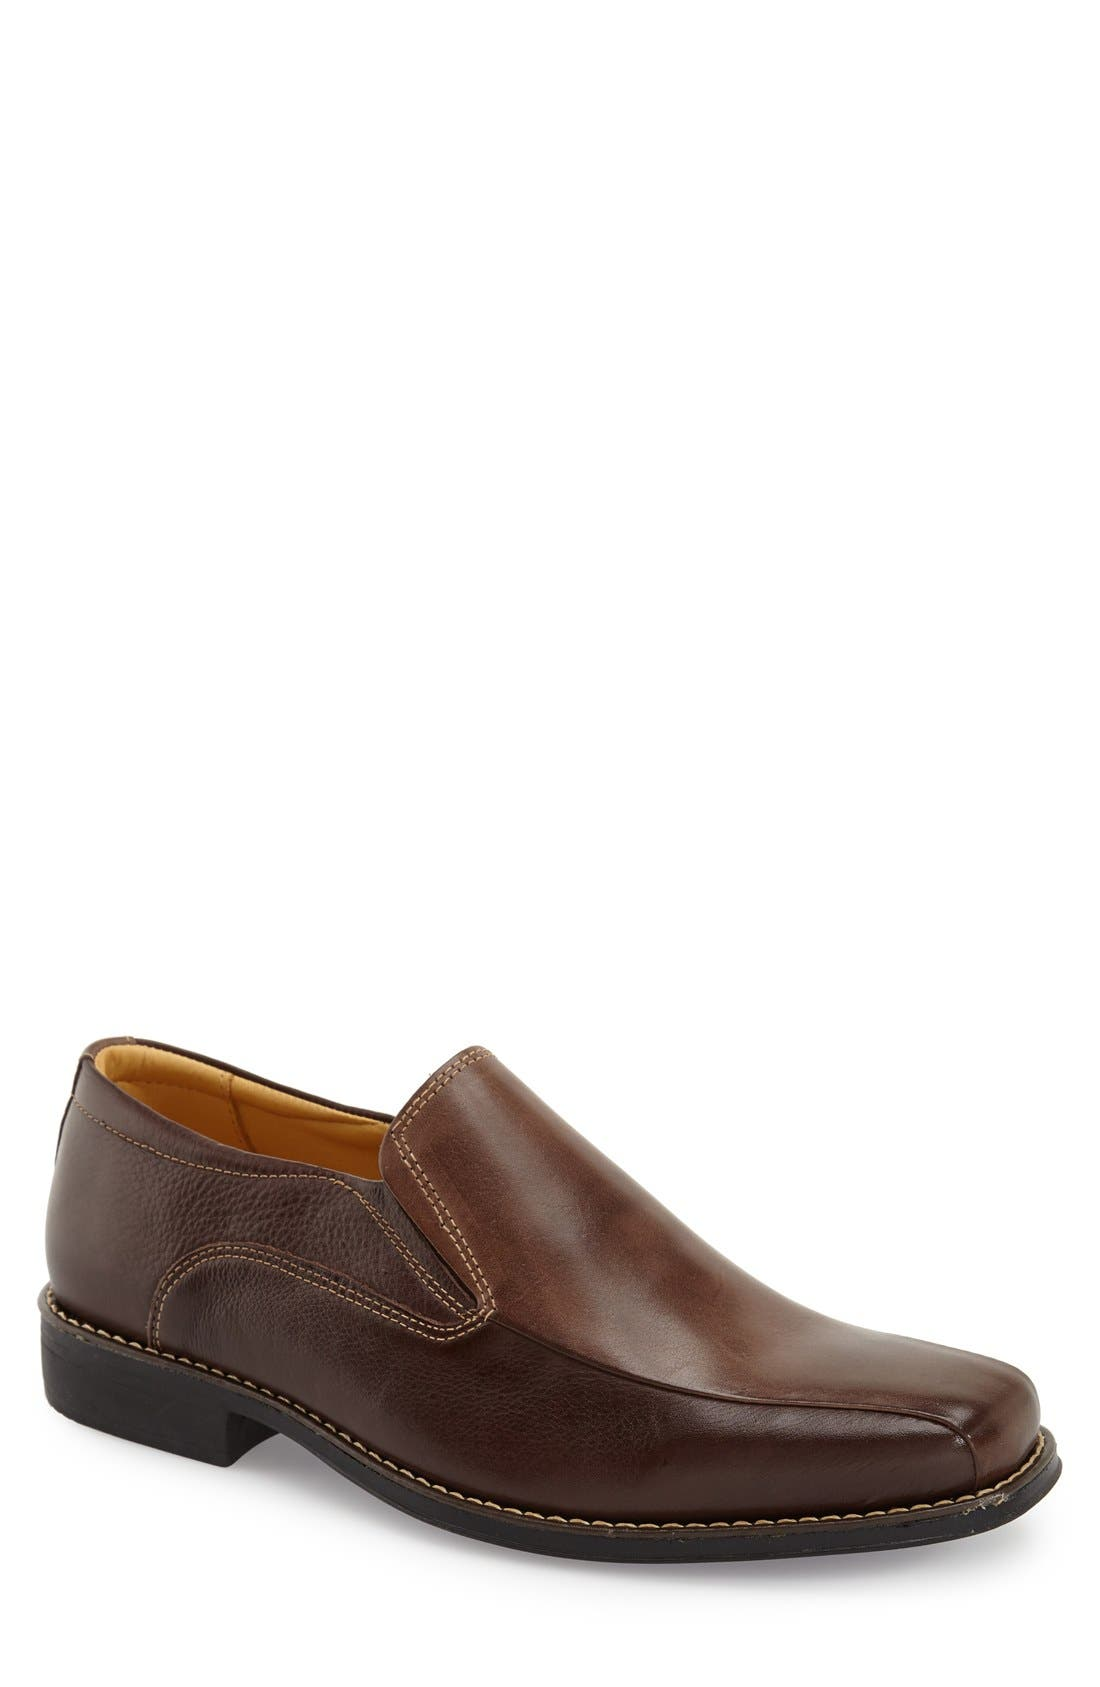 'Jacobs Venetian' Slip-On,                         Main,                         color, Brown/ Brown